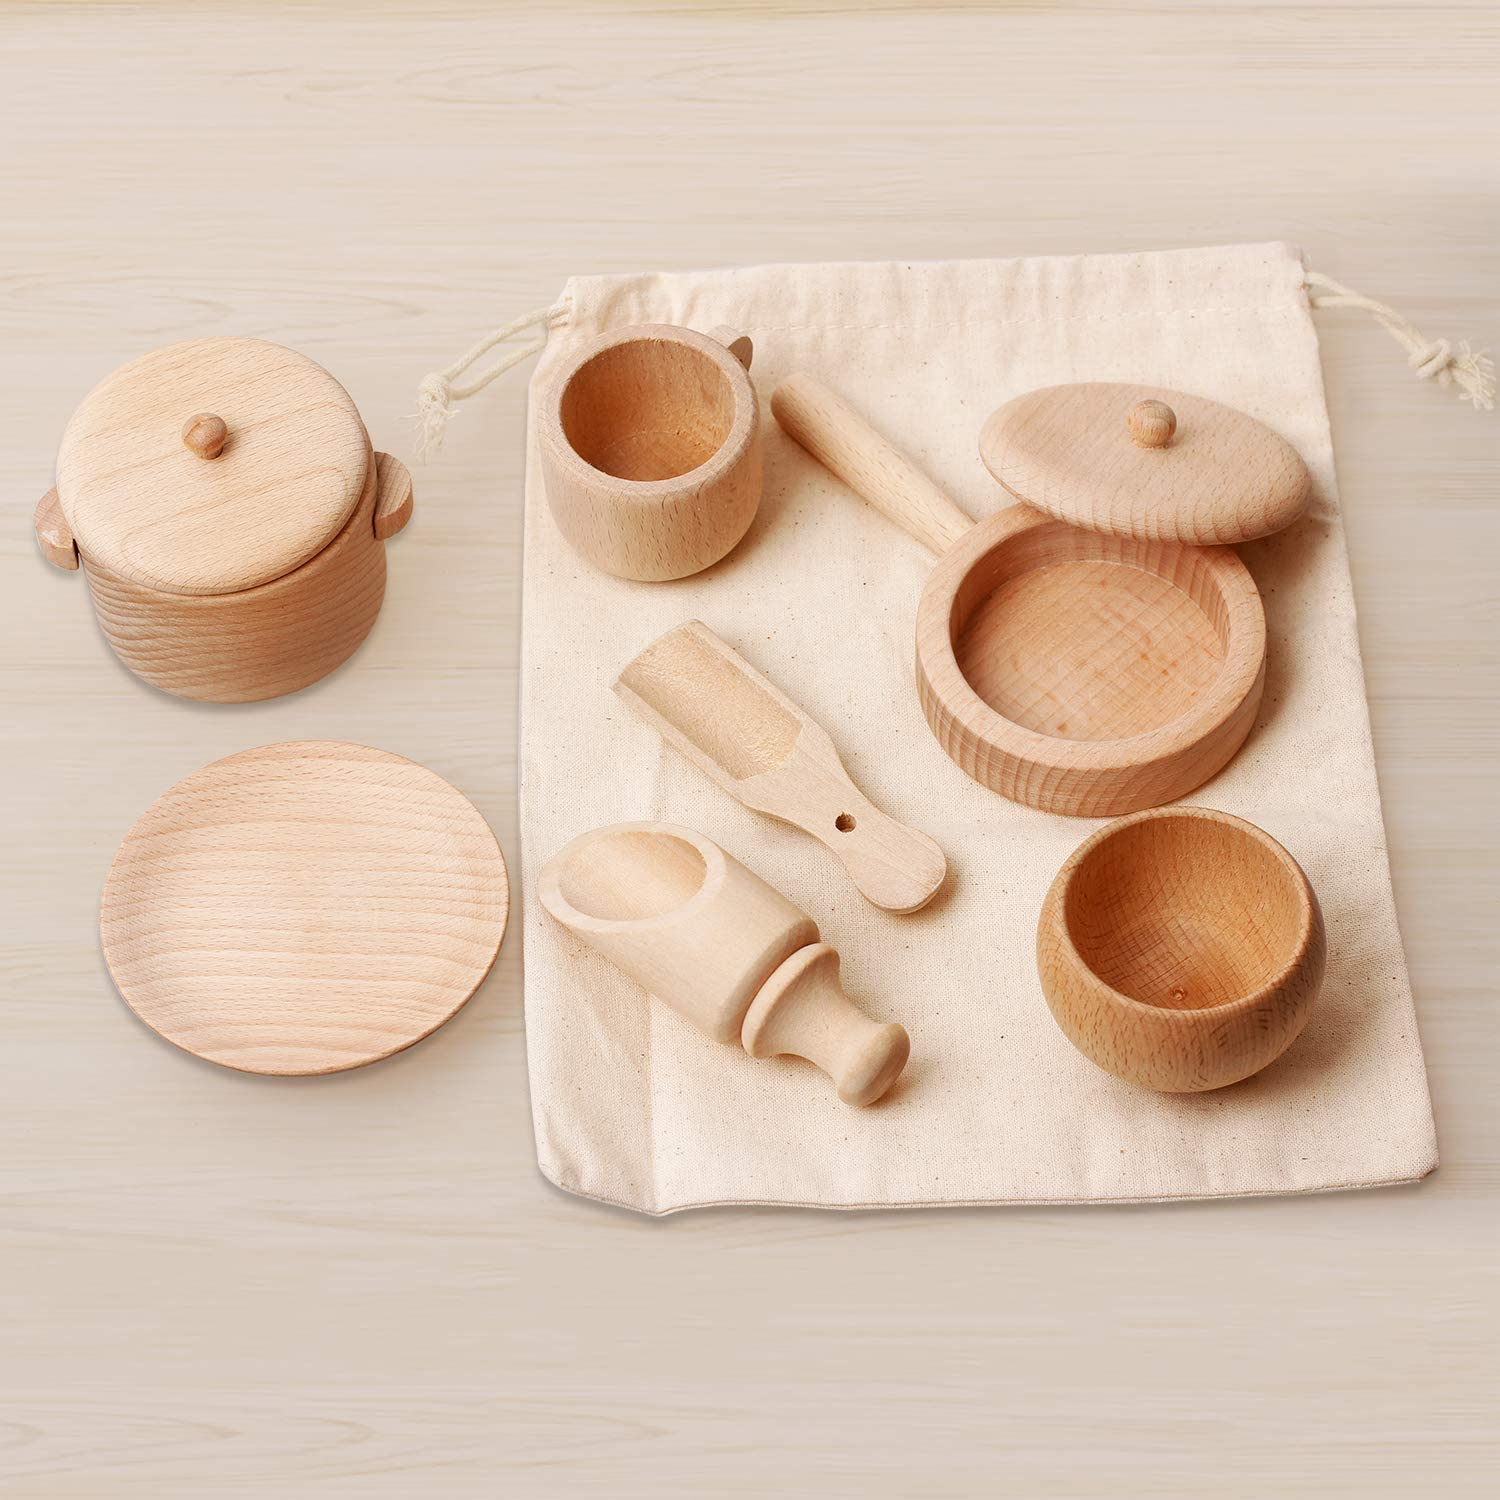 Warckon Sensory Bin Tools, Montessori Toys for Toddlers,Set of 7 Wooden Waldorf Toys Includes Wooden Scoops, Wooden Dish for Transfer Work and Fine Motor Skills Development for Kids